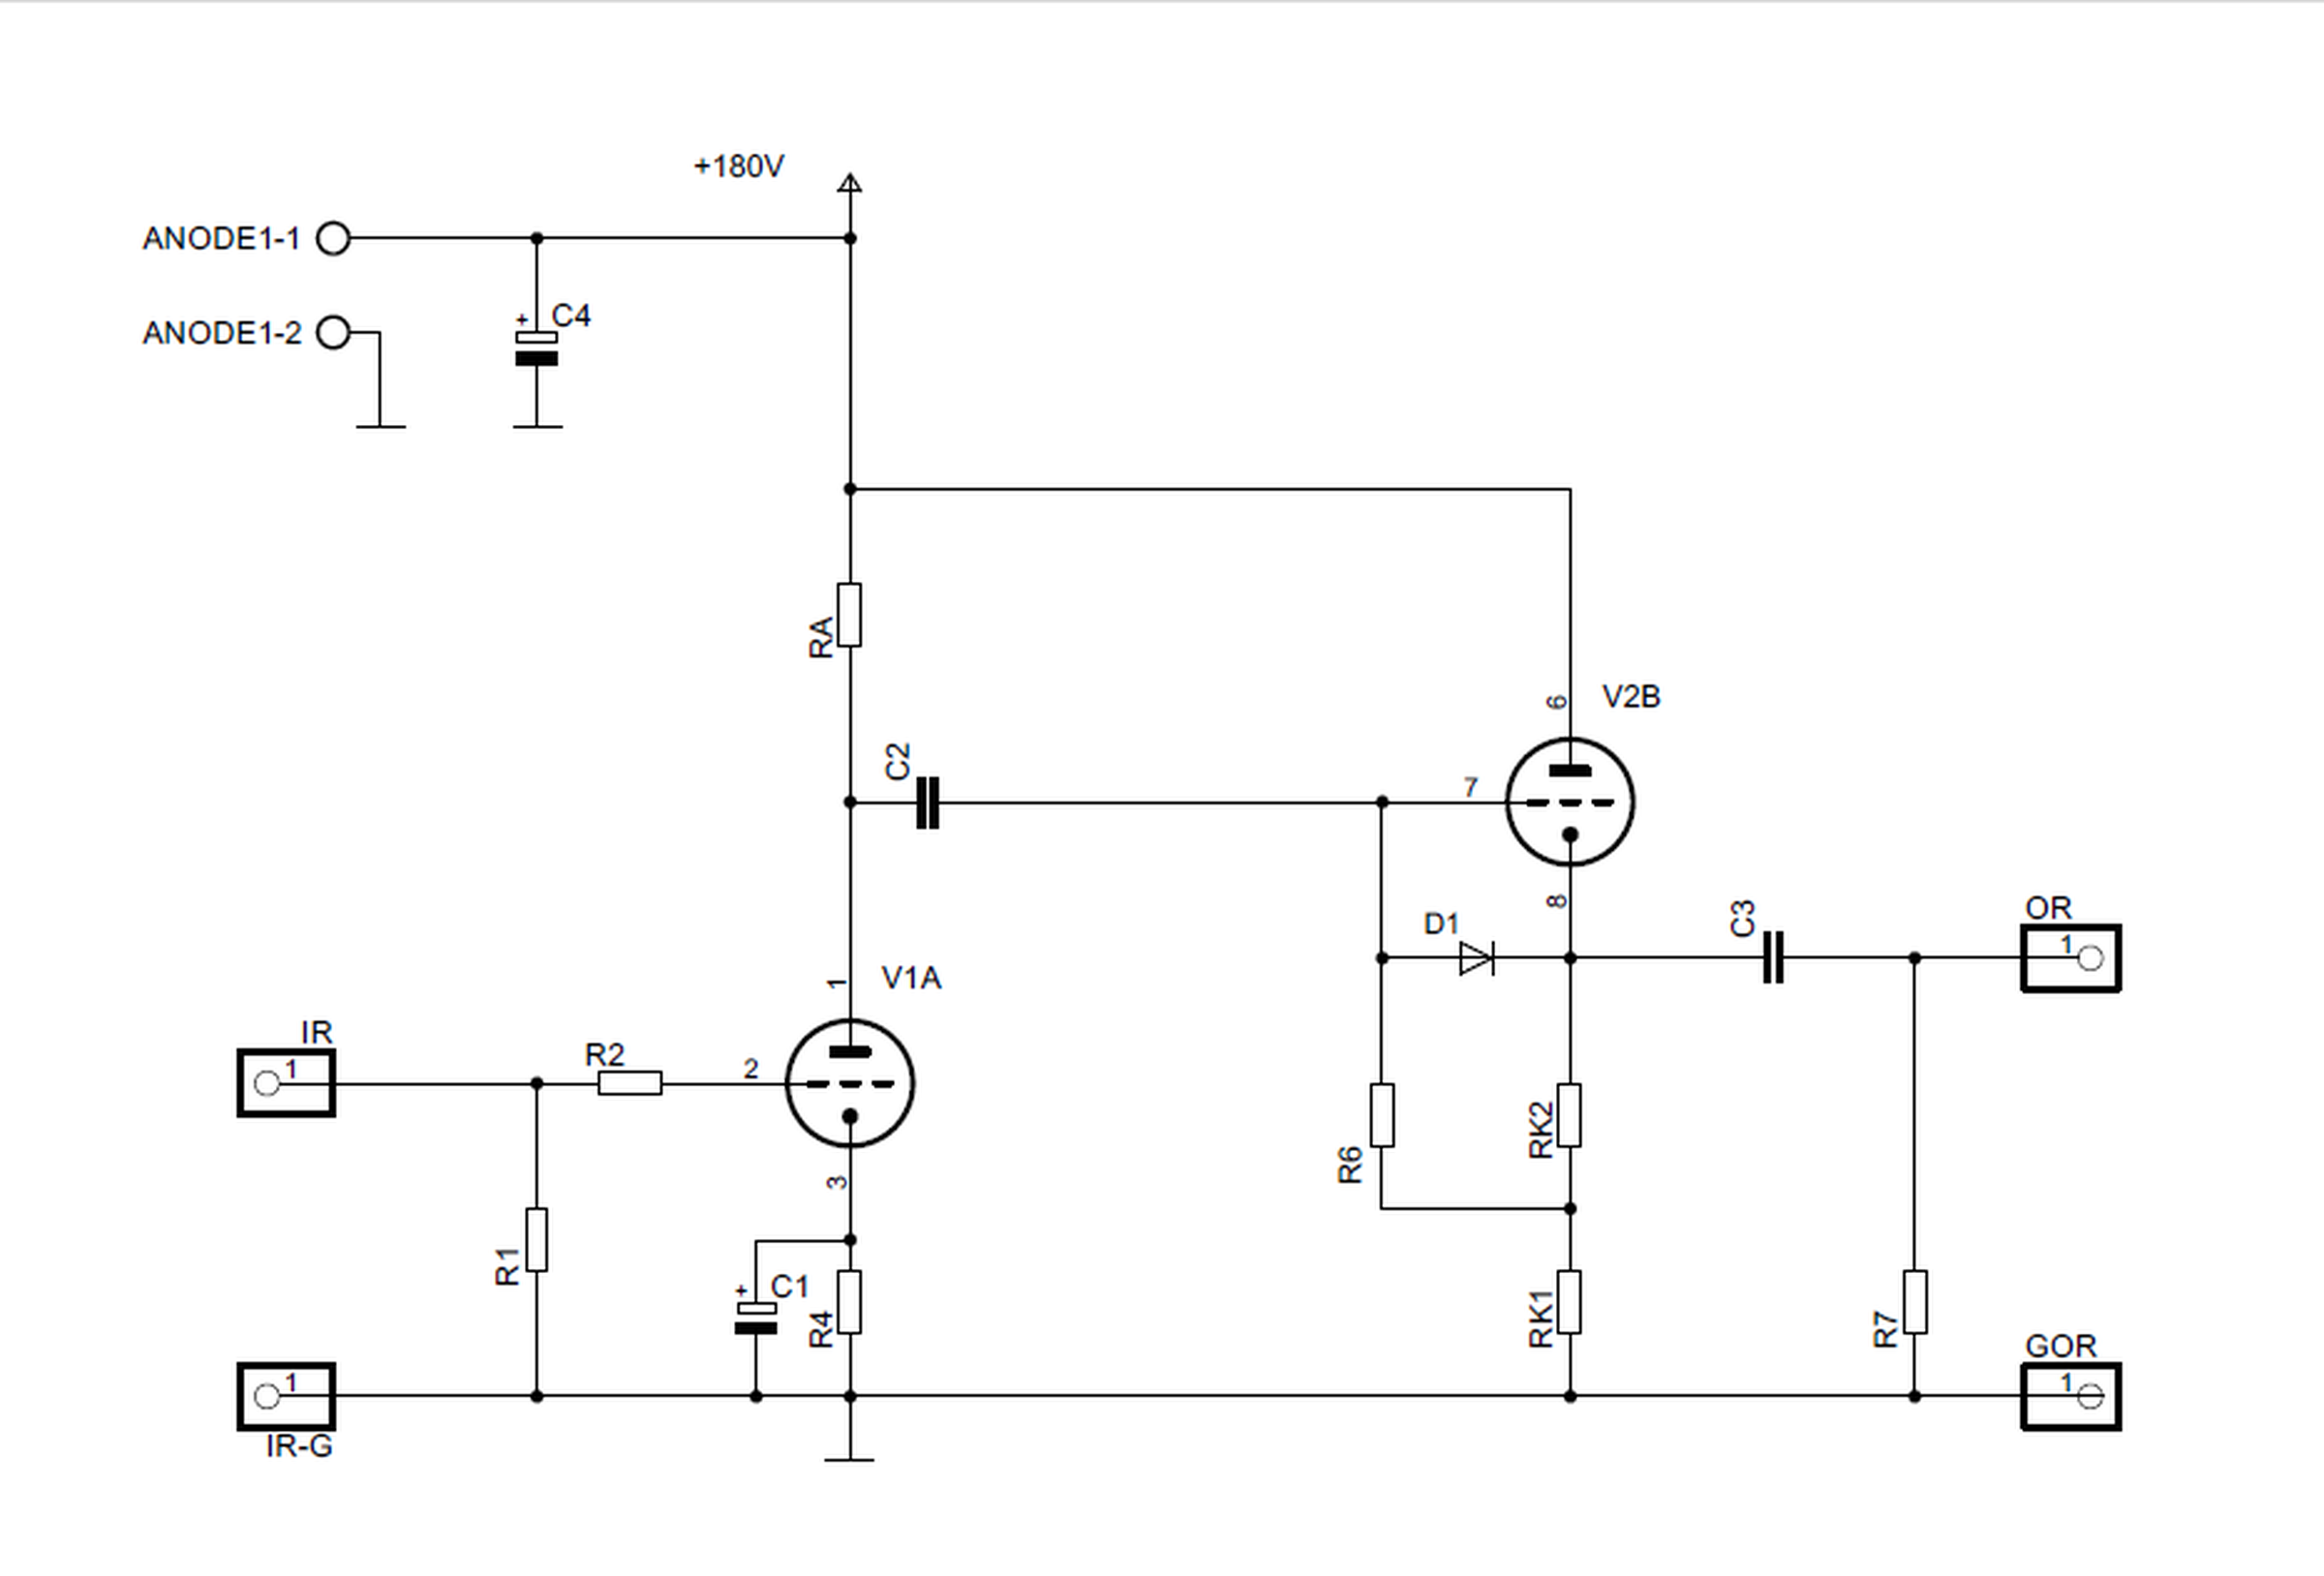 Universal Pcb For Tube Preamp Ccda Stage Ecc88 From Stereo24 On Tindie Nixie Clock Circuit Diagrams 7